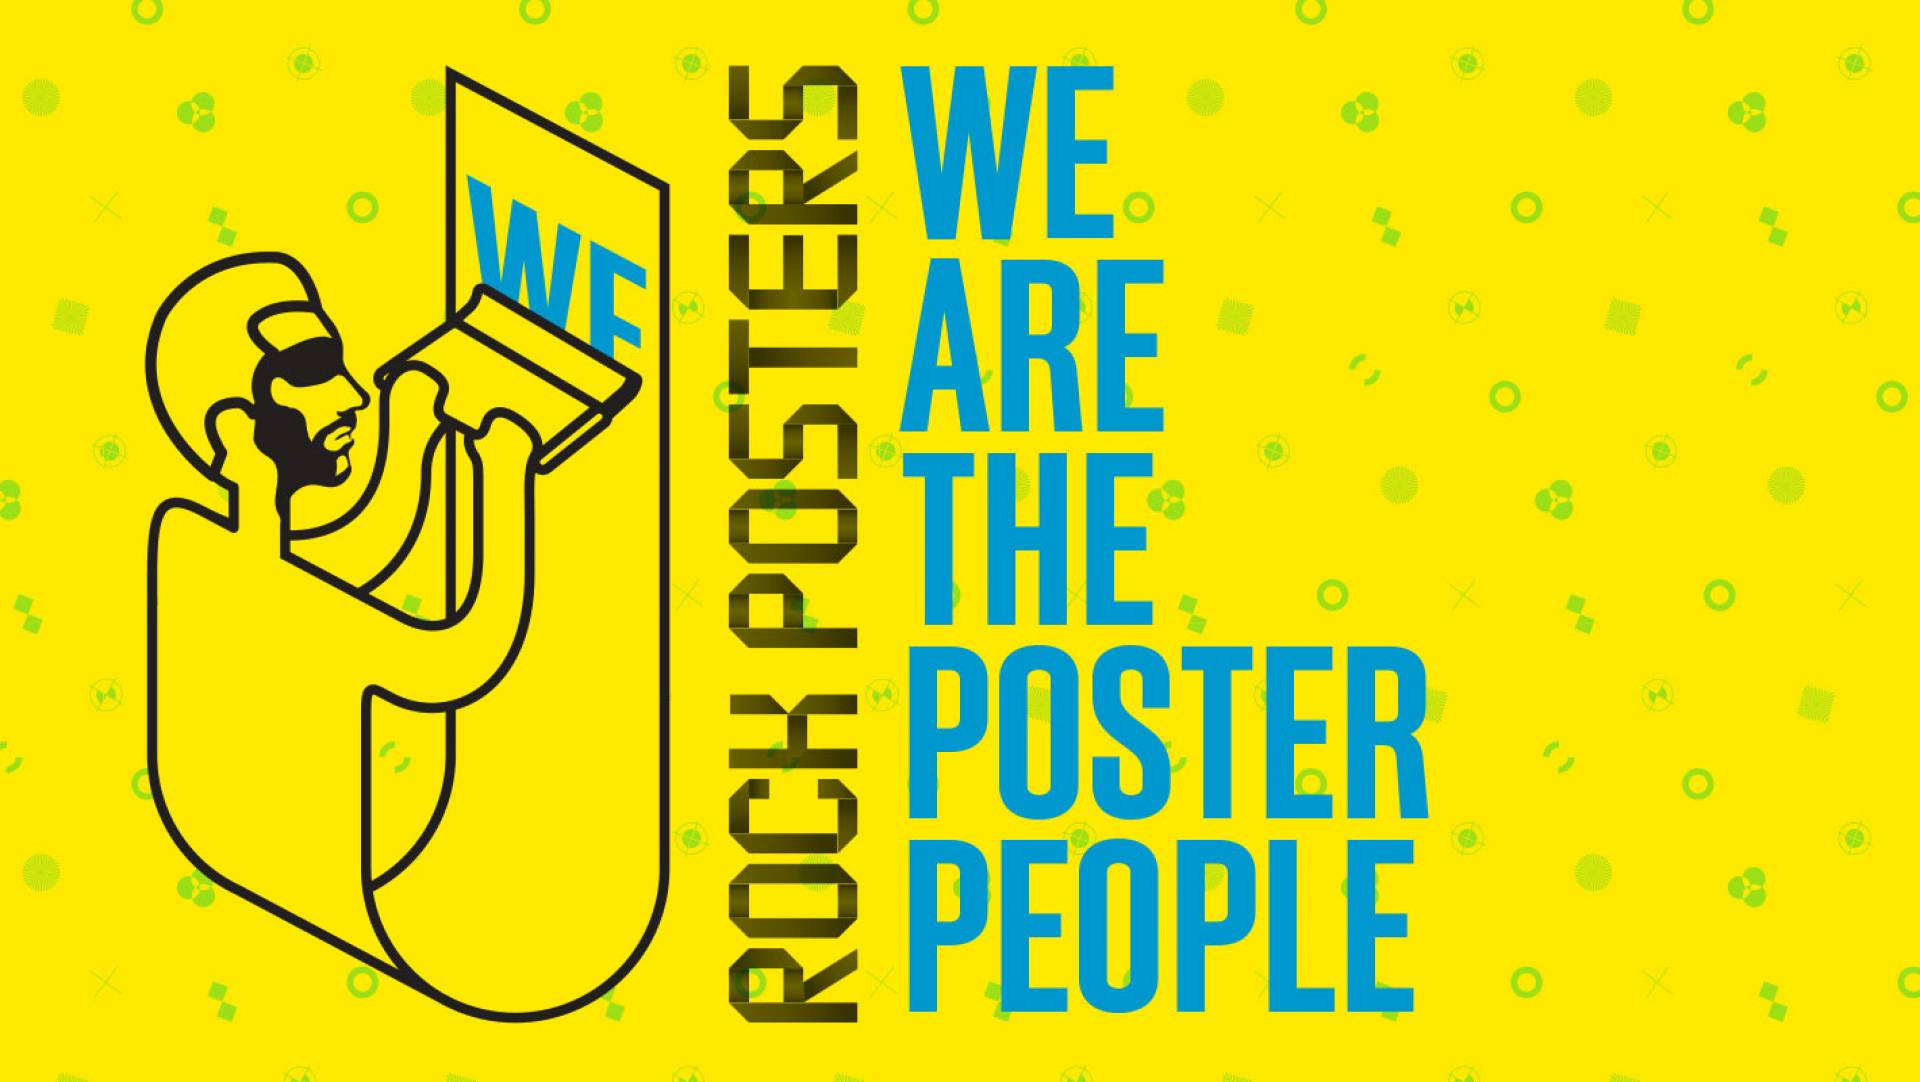 rock Posters Visual Identity Systems and Website by Studio Equator